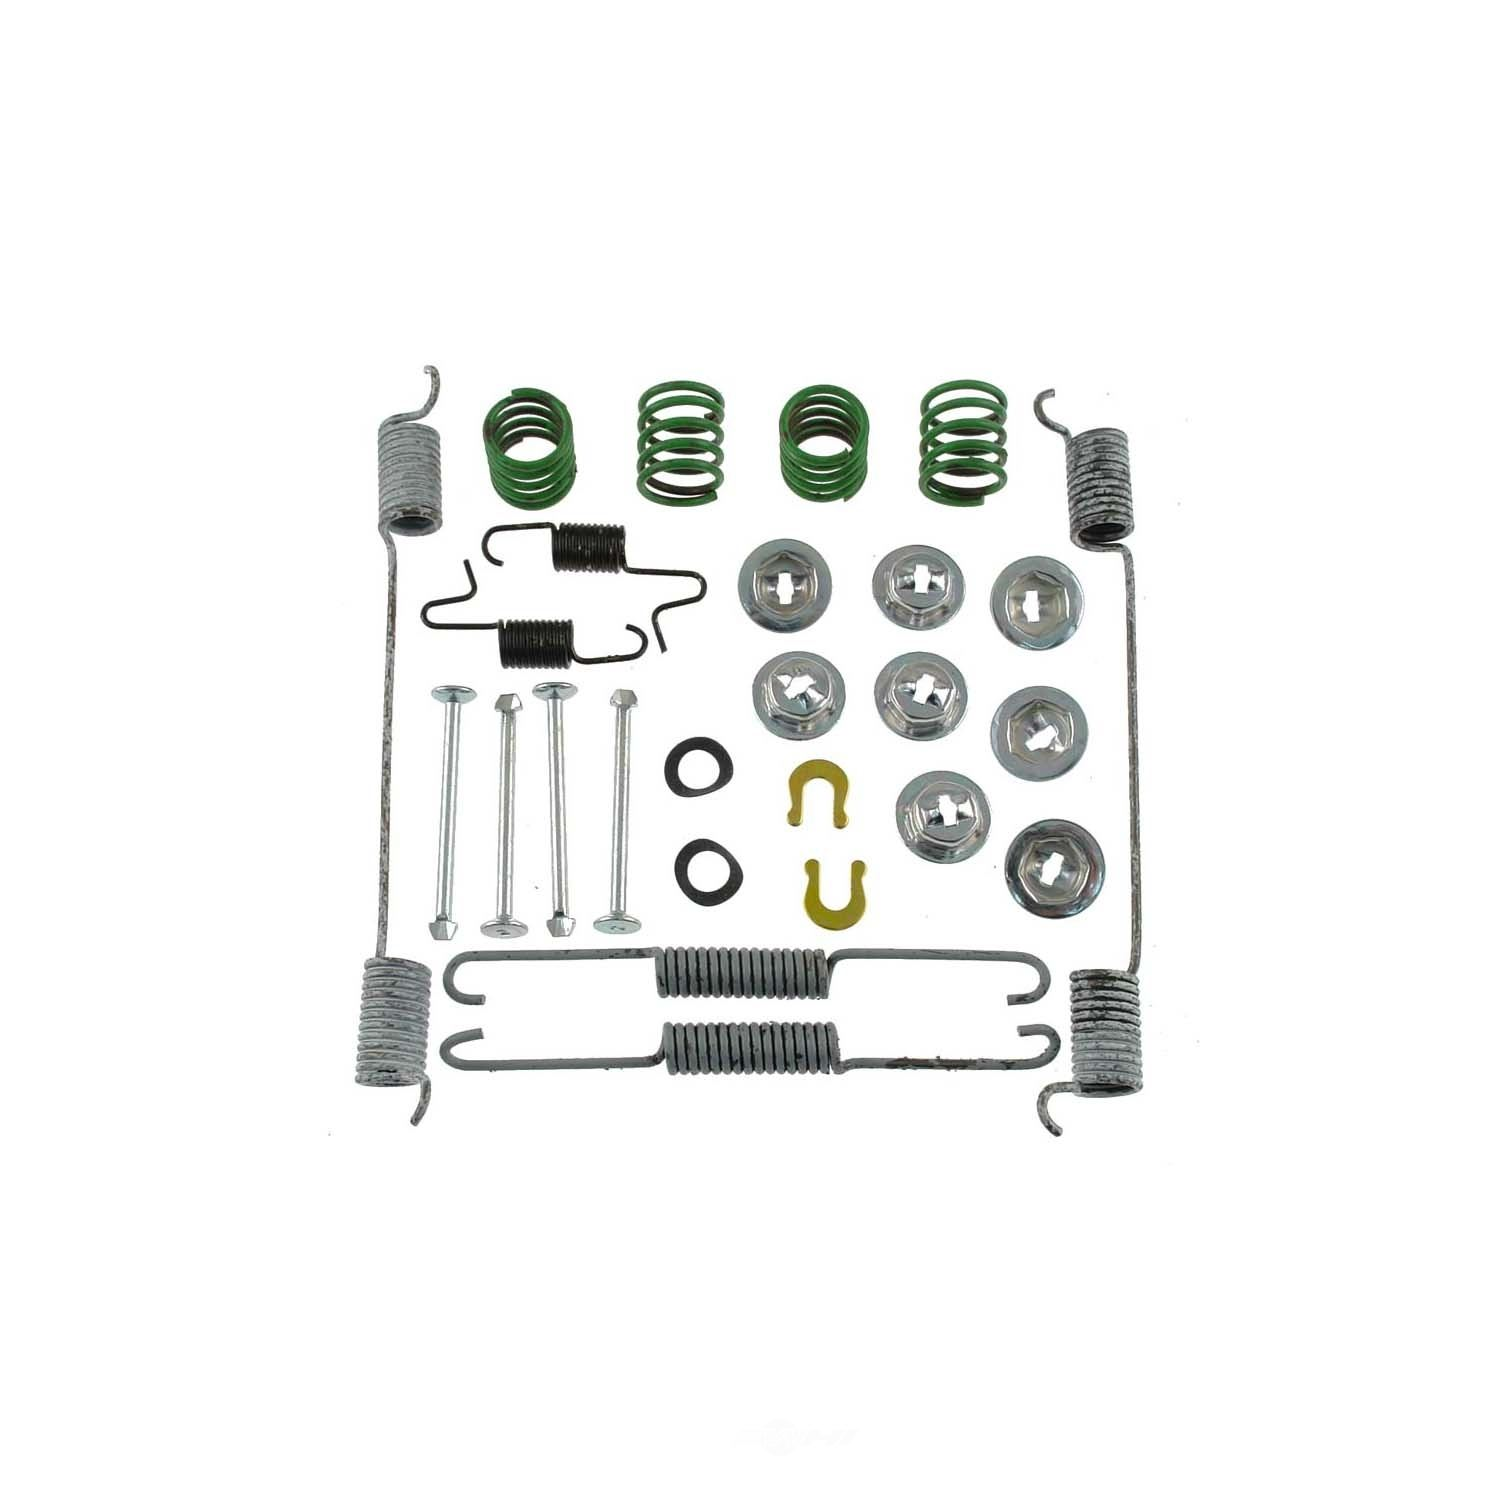 Nissan Datsun Frontier Drum Brake Hardware Kit From Best